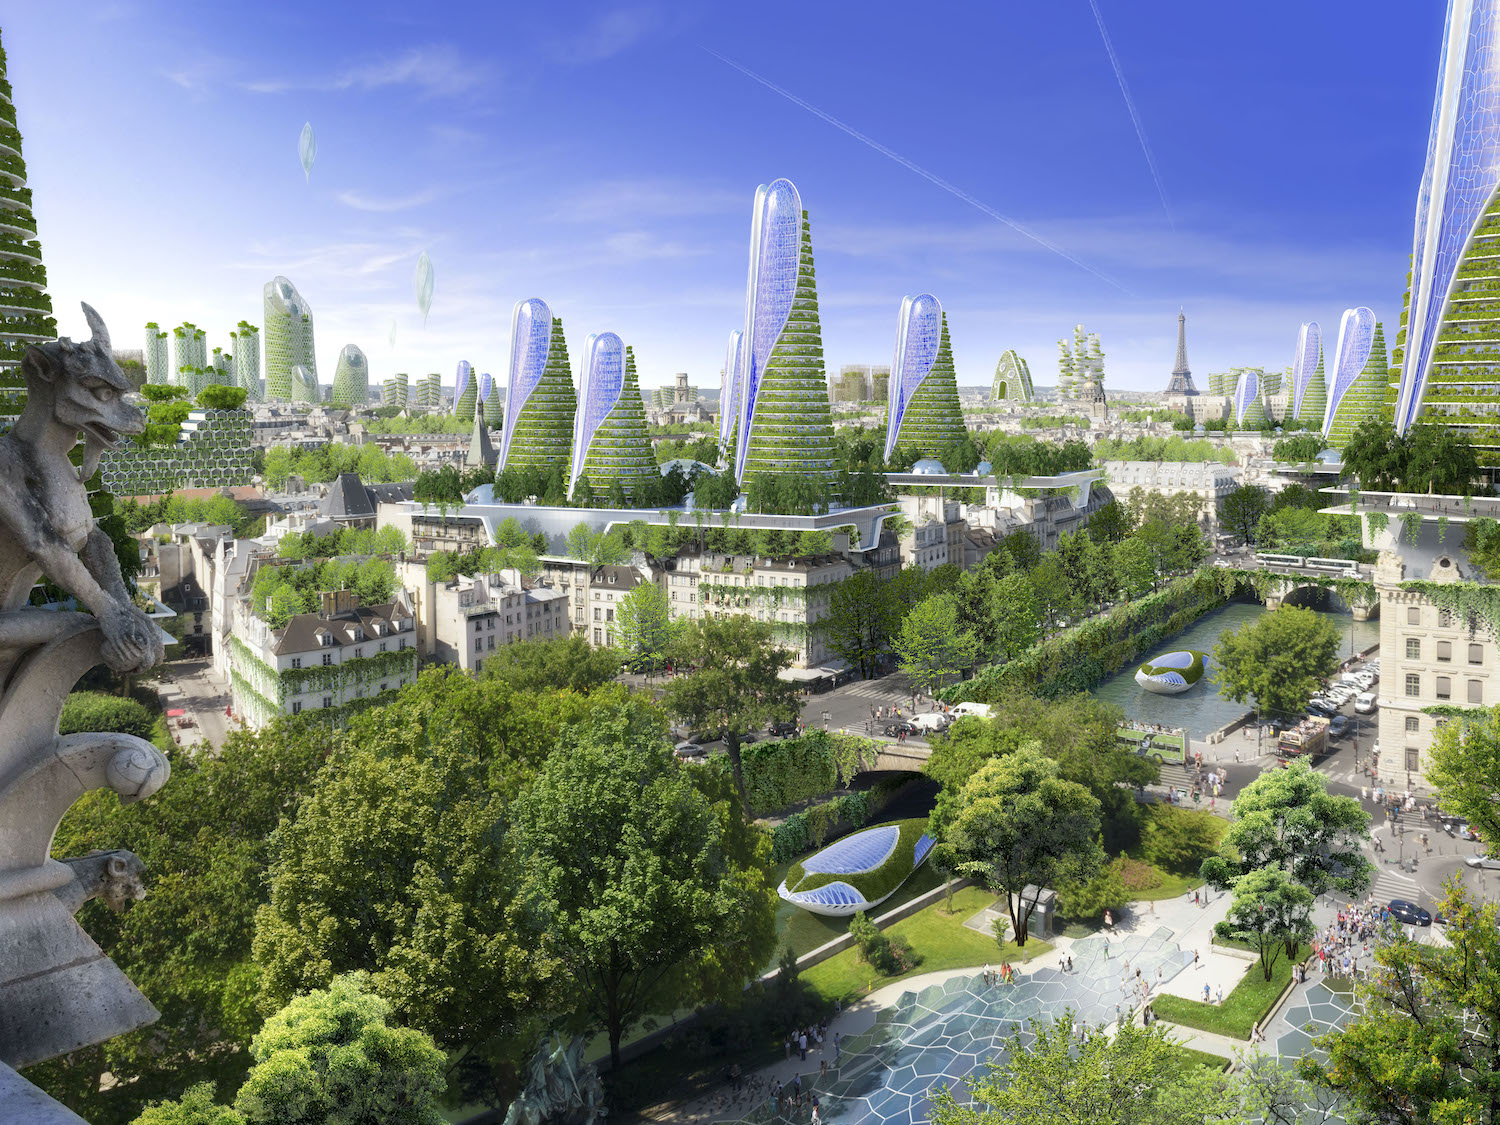 Paris Smart City 2050 by Vincent Callebaut Architectures